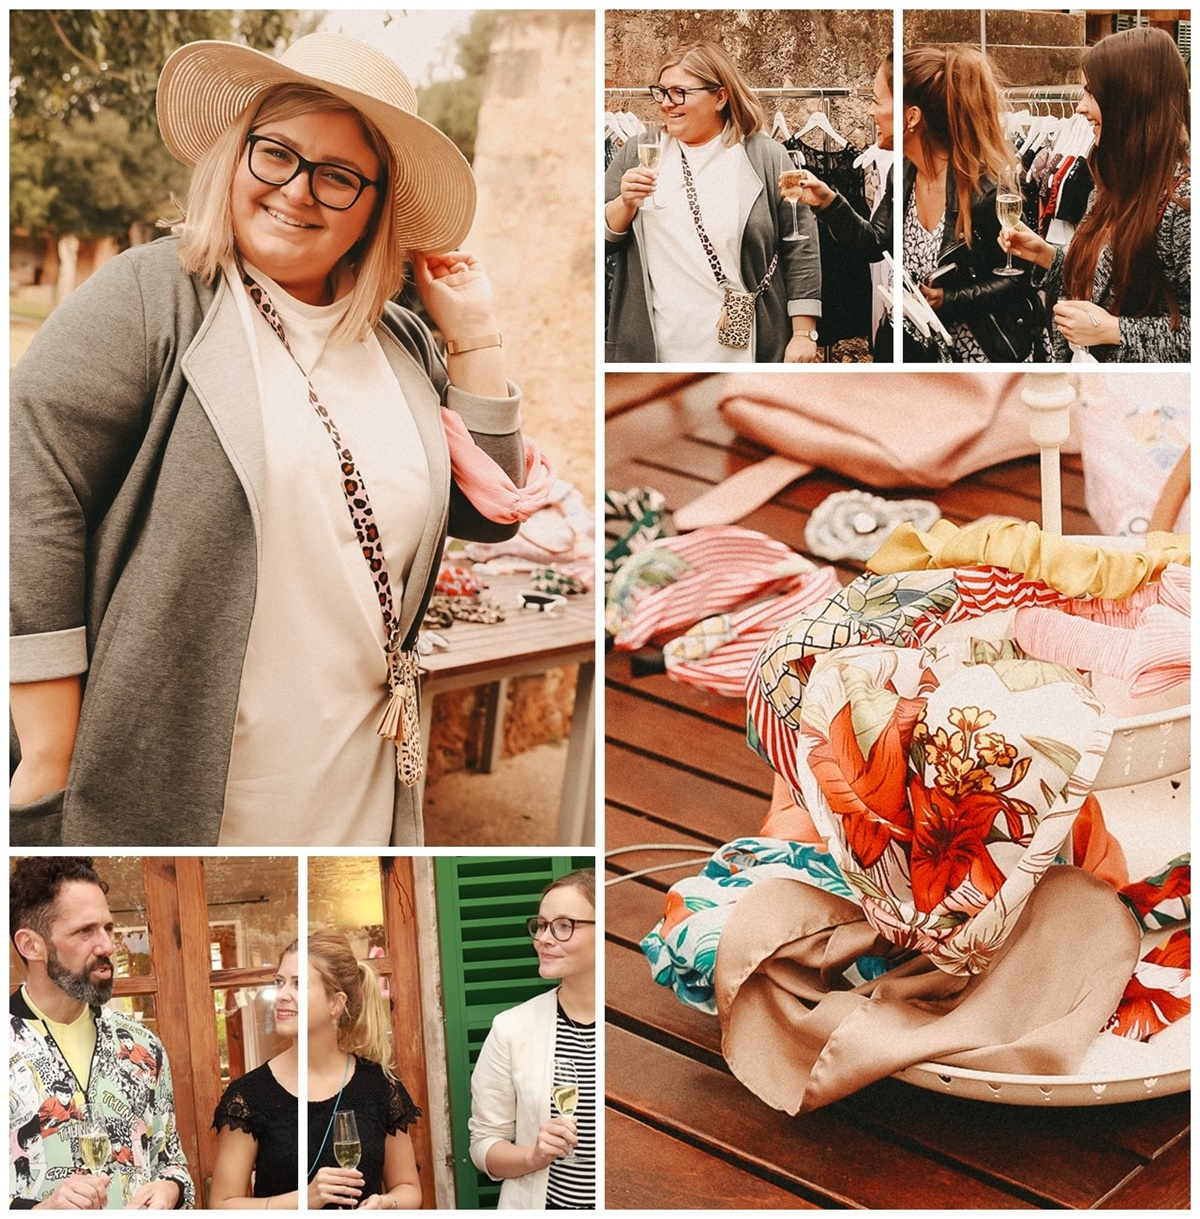 elabonbonella ernstings family blogger event mallorca 2019 03